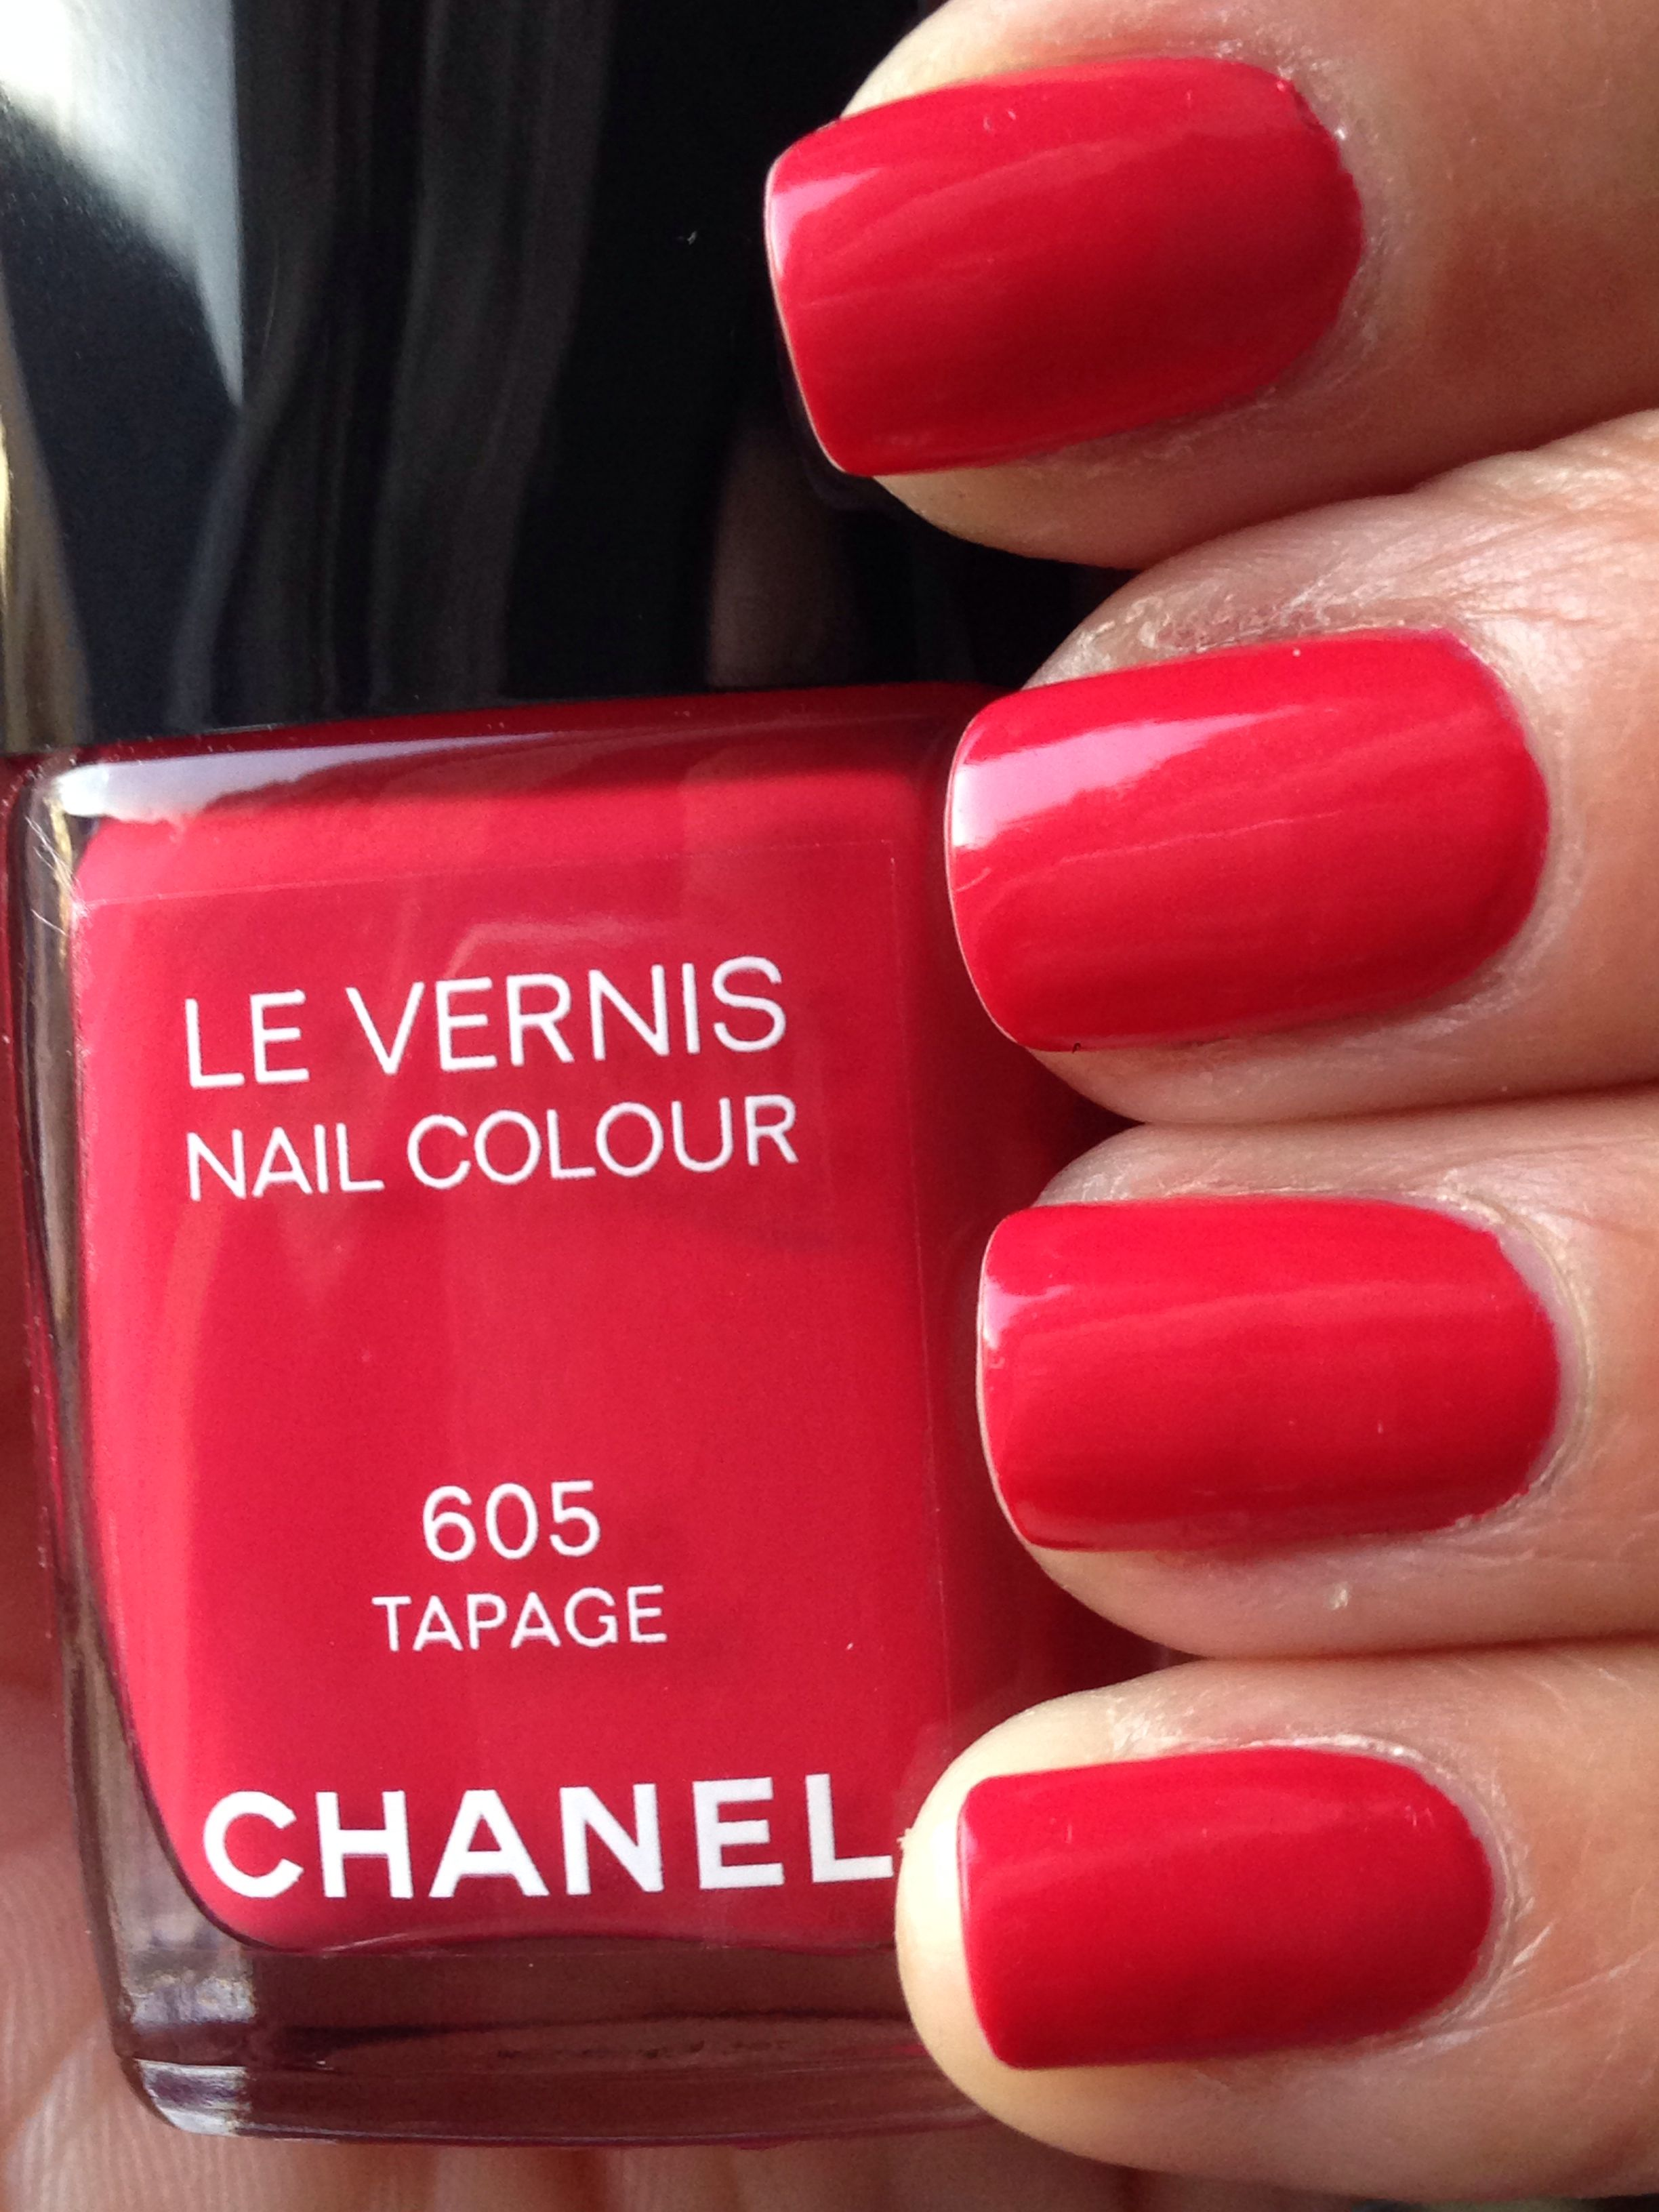 Chanel Tapage  A Beautiful Coral Red Shade - Nail